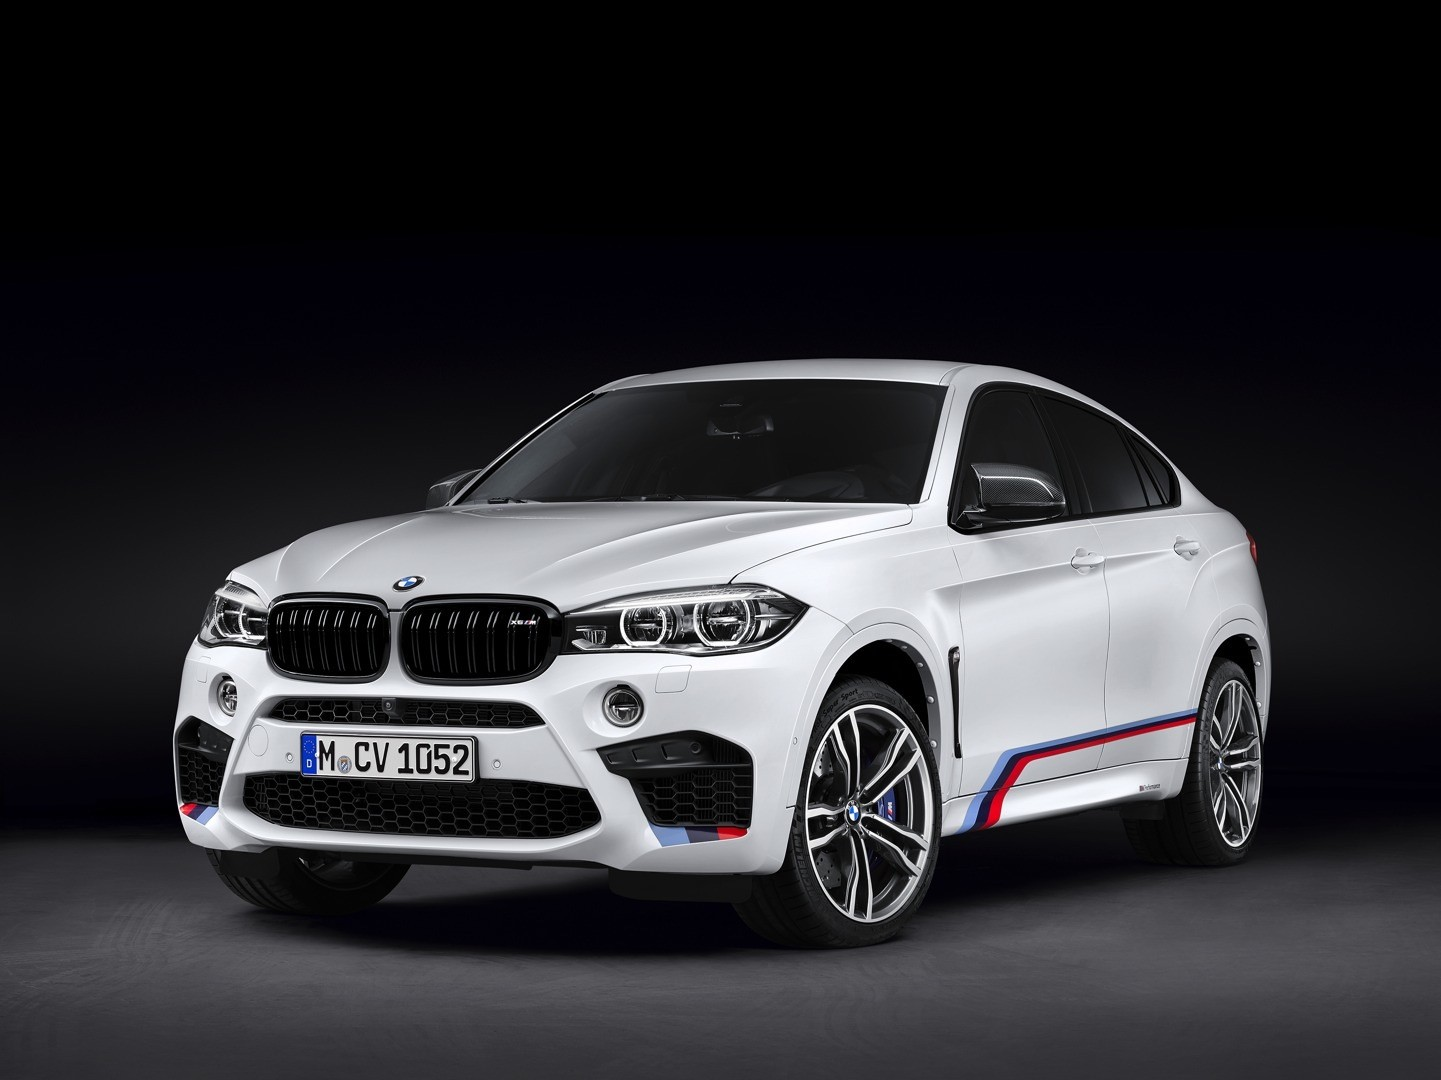 bmw unveils m performance parts for x5 m and x6 m models. Black Bedroom Furniture Sets. Home Design Ideas